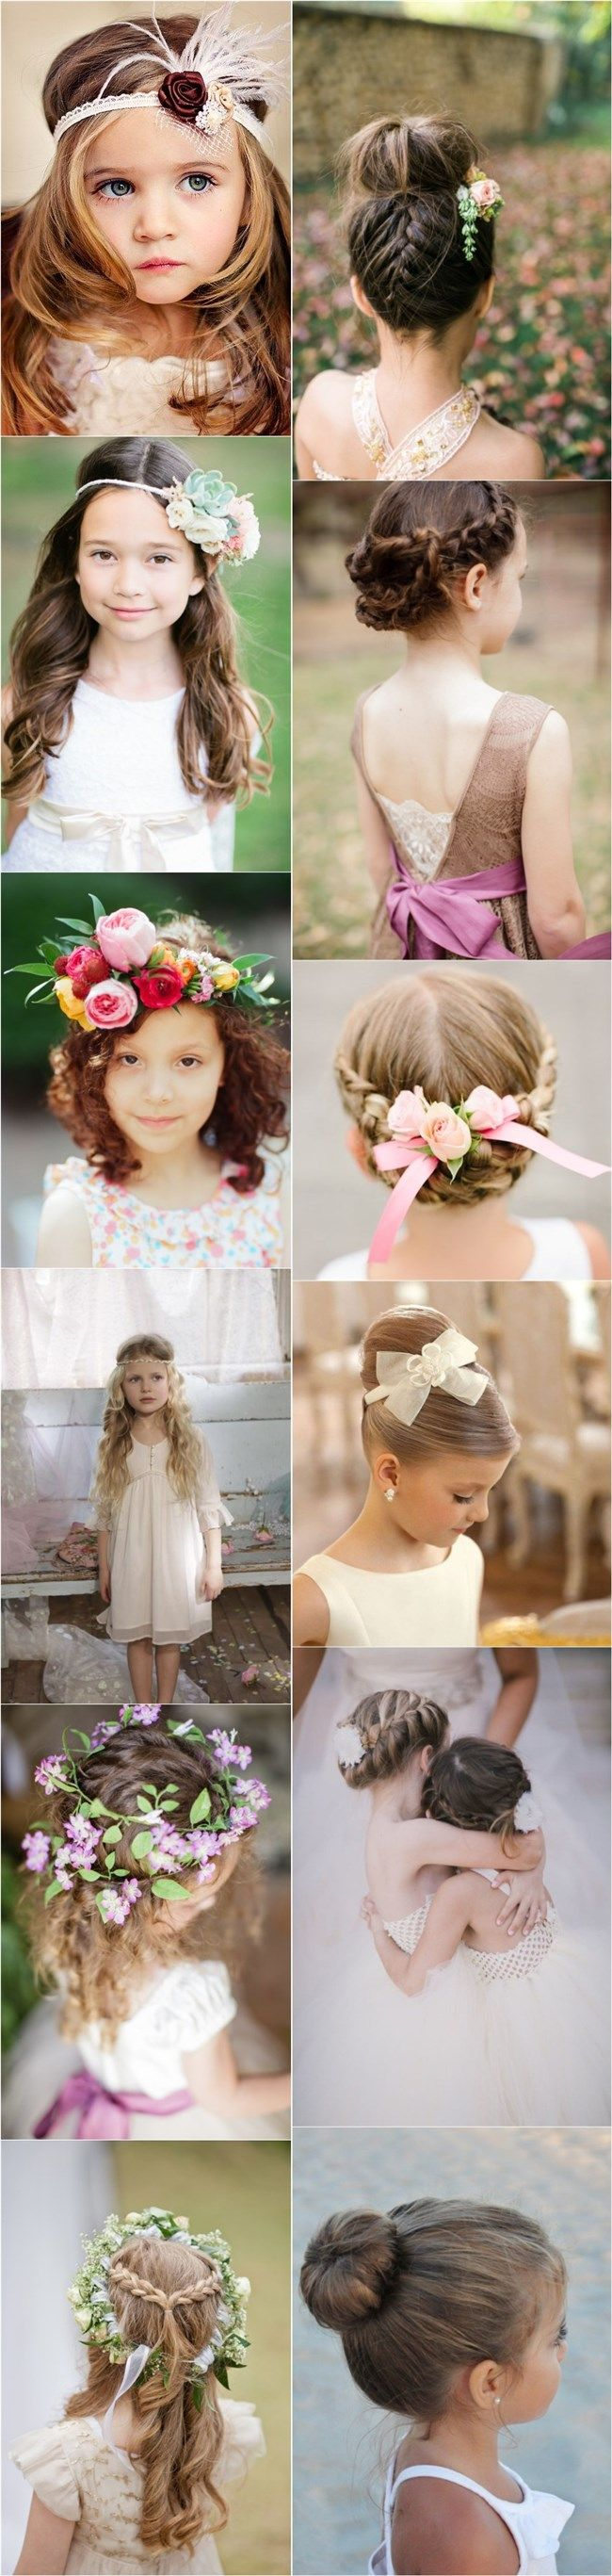 Best Hair Style For Bride Cute Little Girl Hairstyles Updos Braids Waterfall Www Deerpearlflow Youfashion Net Leading Fashion Lifestyle Magazine